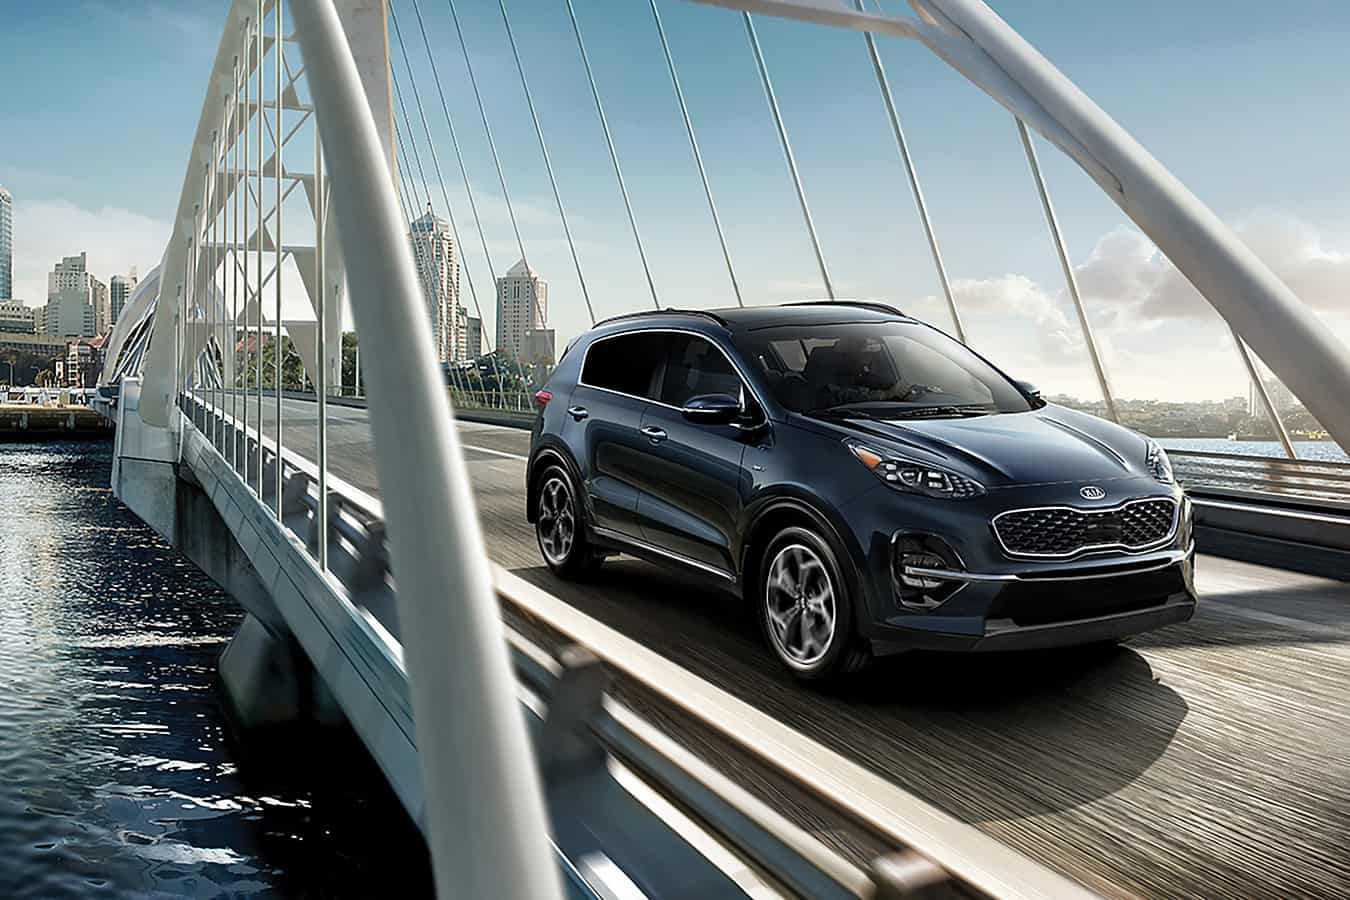 Test drive the 2020 Kia Sportage near Brampton ON